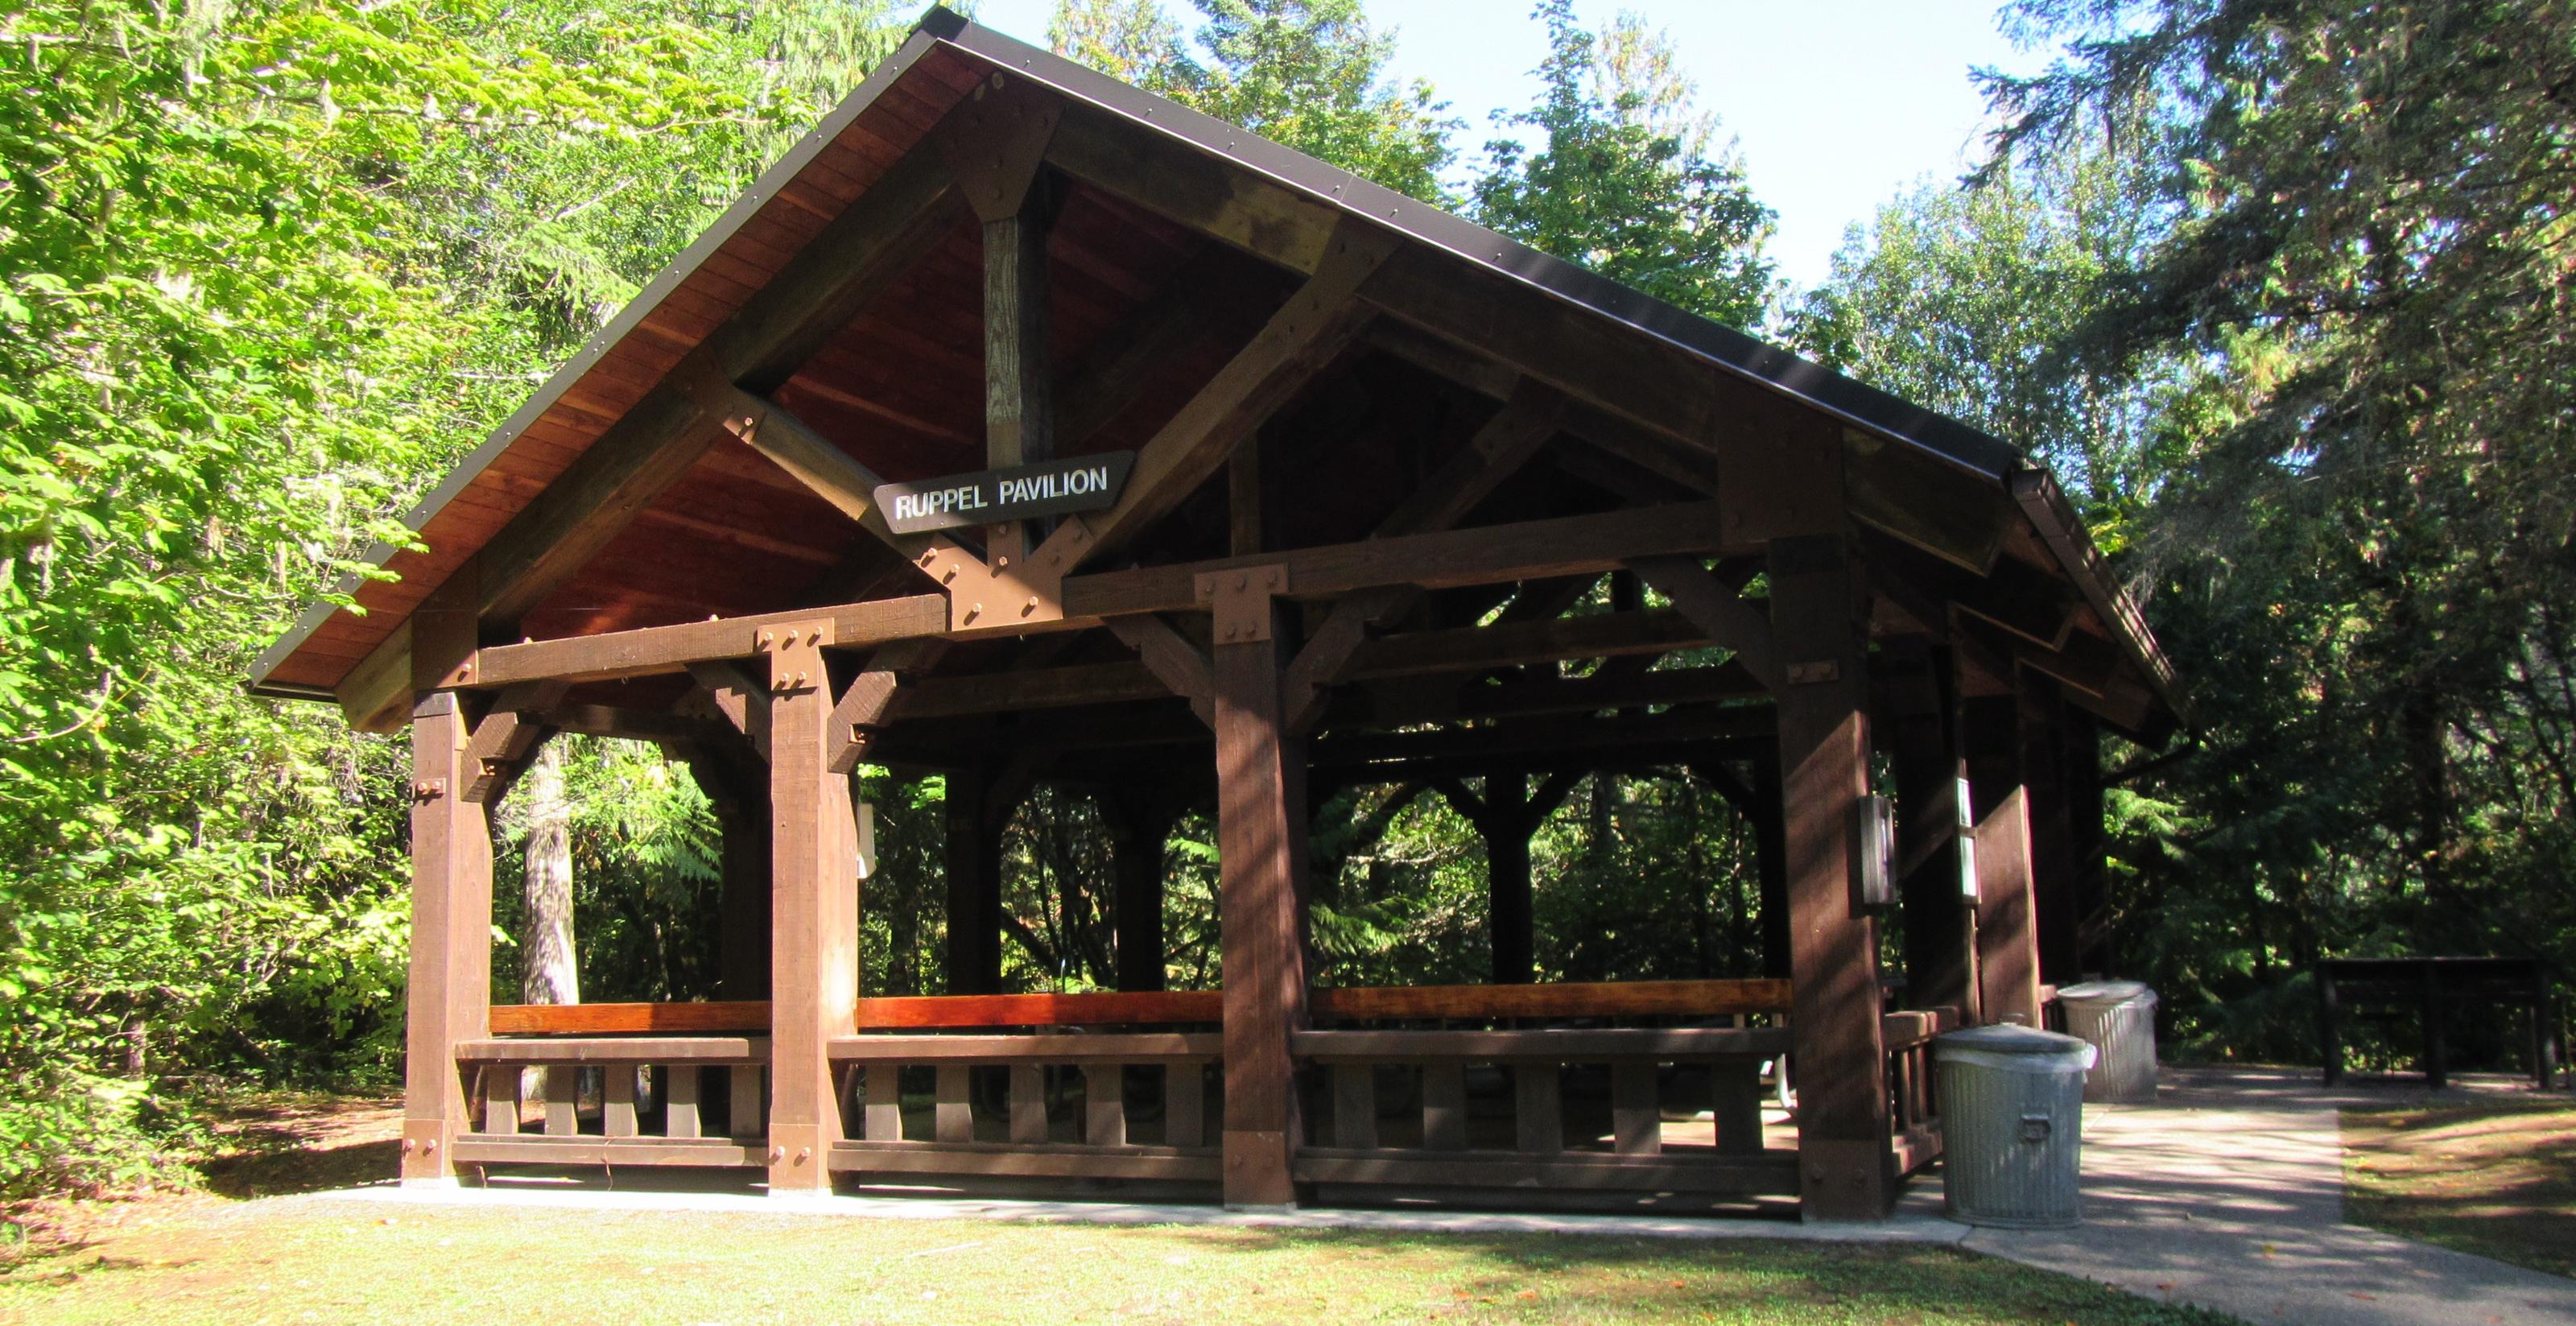 Large wooden pavilion, surrounded by trees and grass